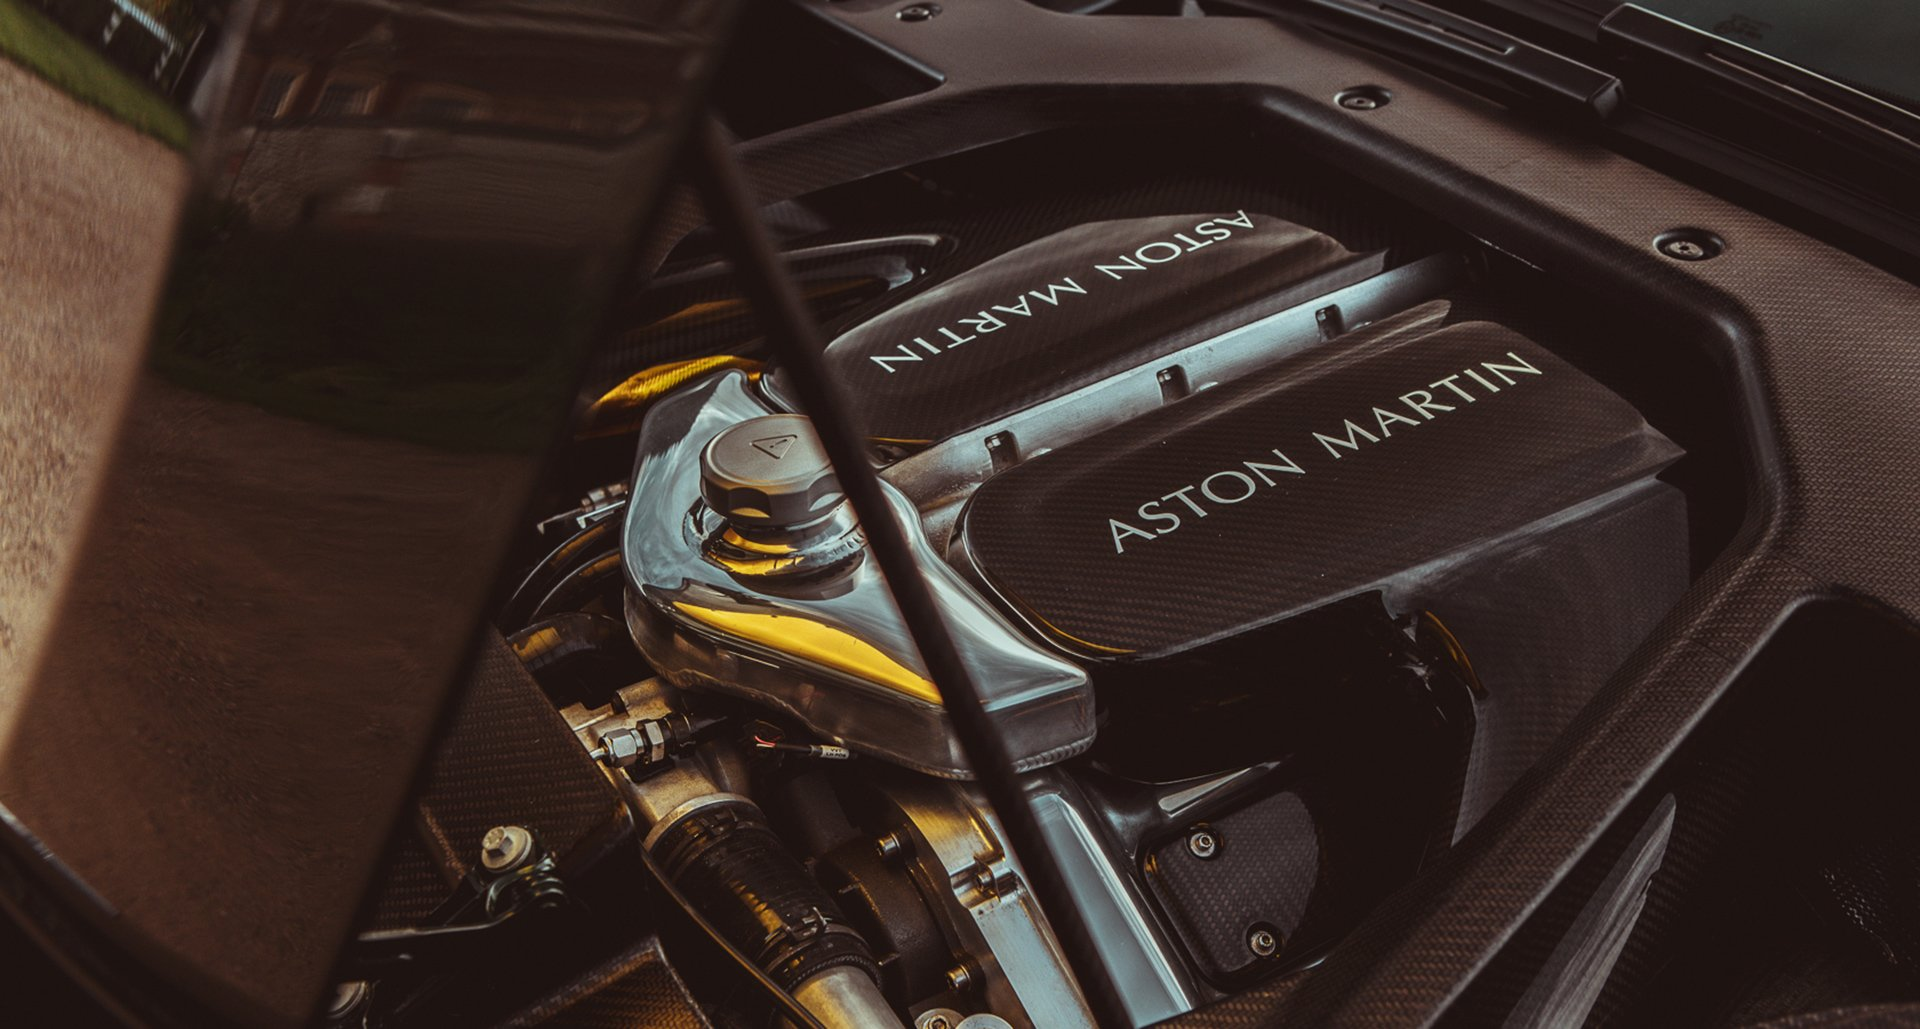 Aston Martin Victor by Q - 2020 - engine / moteur - under the hood - by Alex Lawrence via Classic Driver